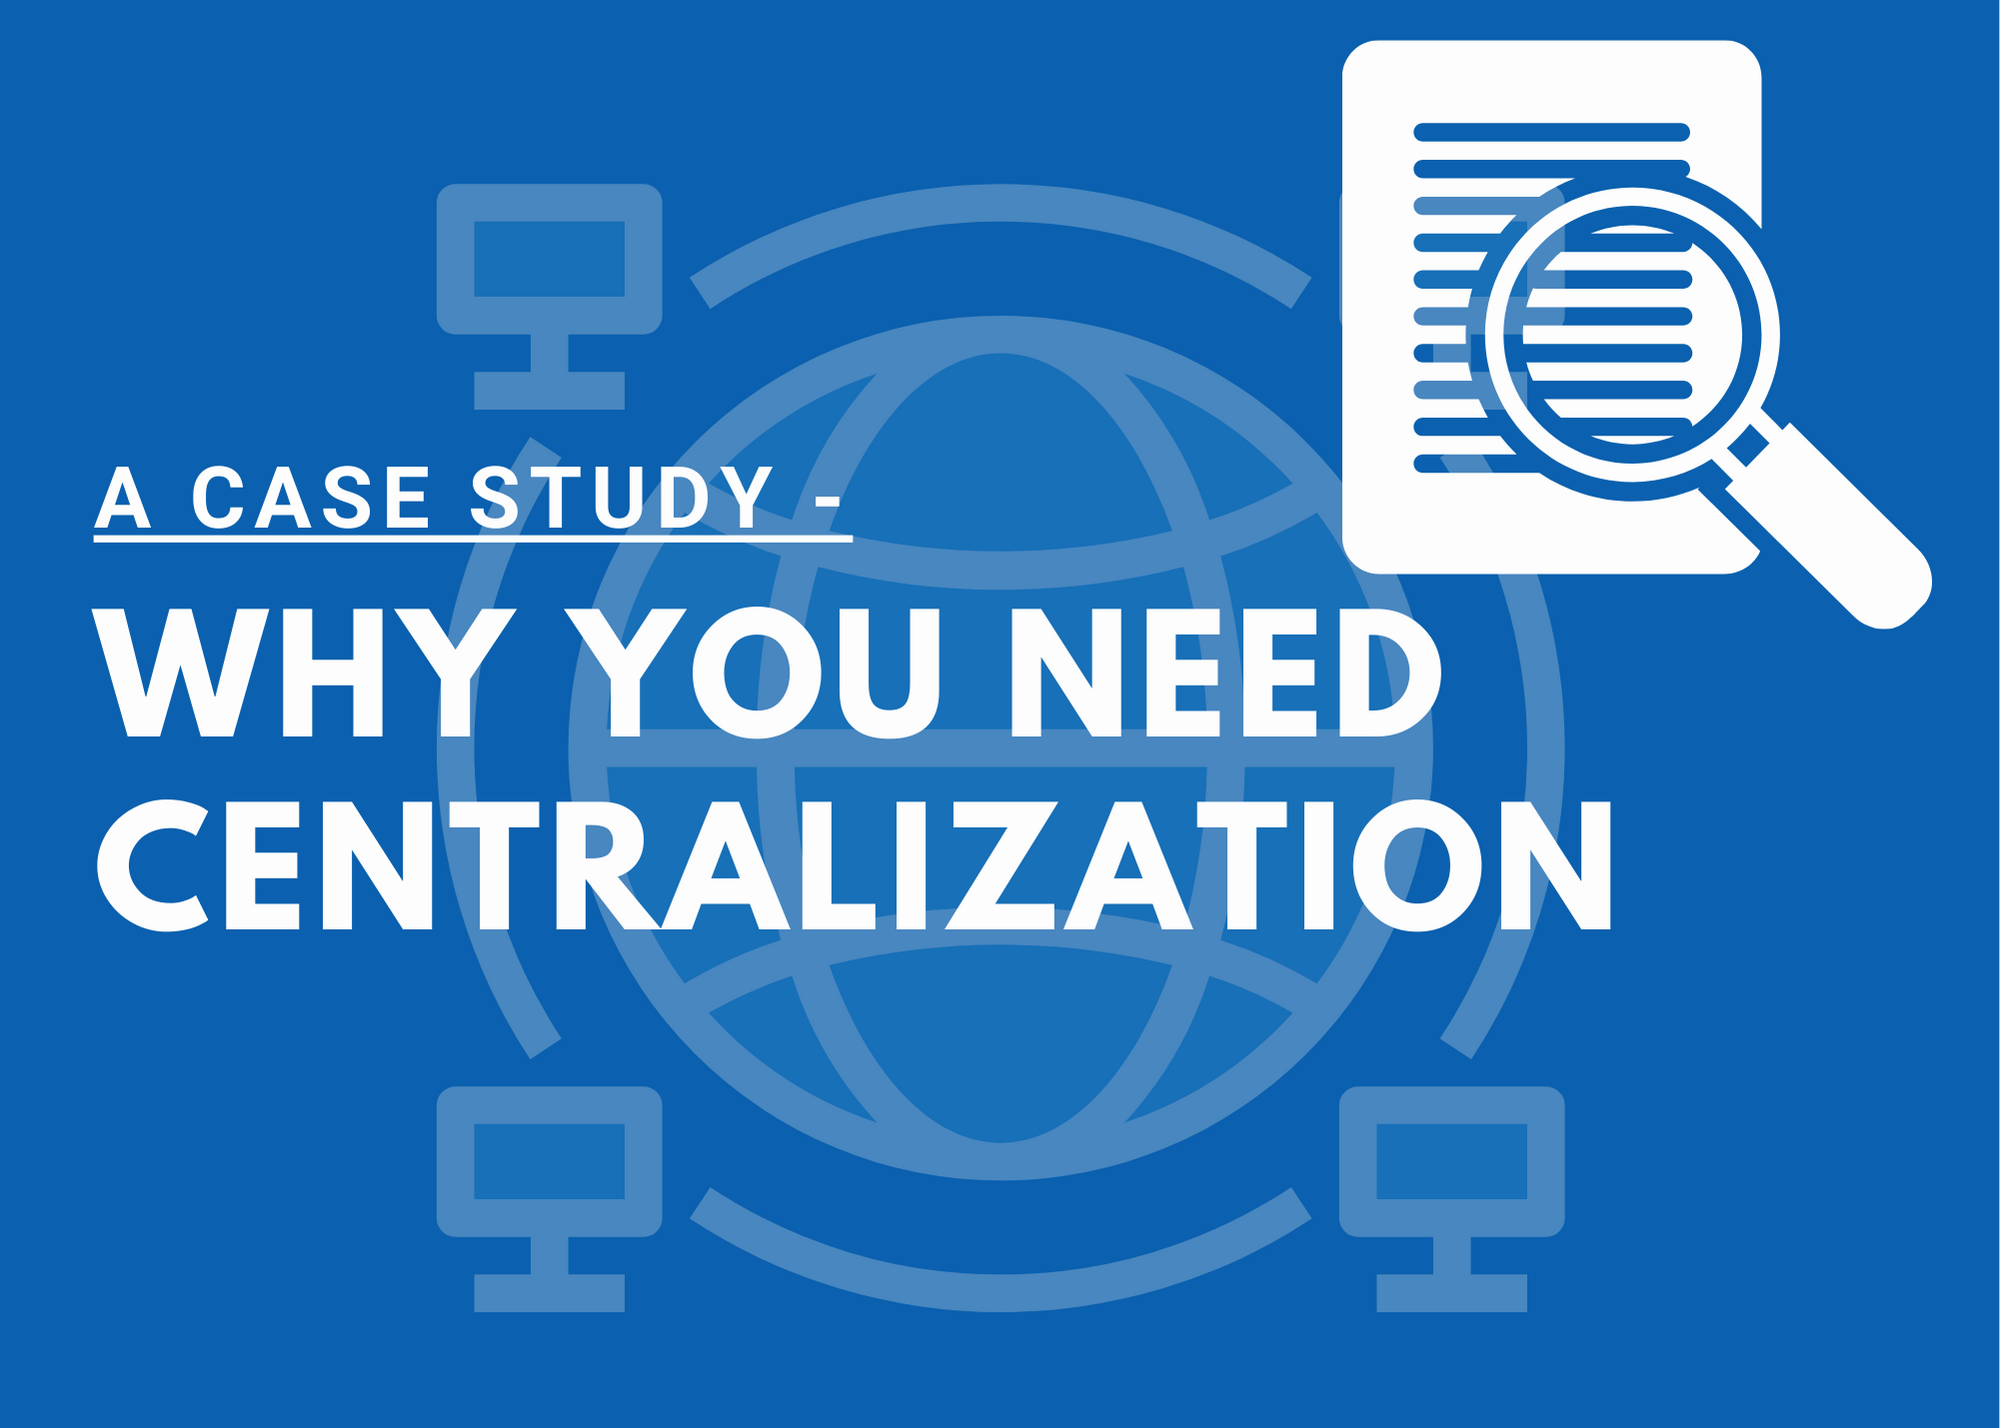 centralization is important for effective data management